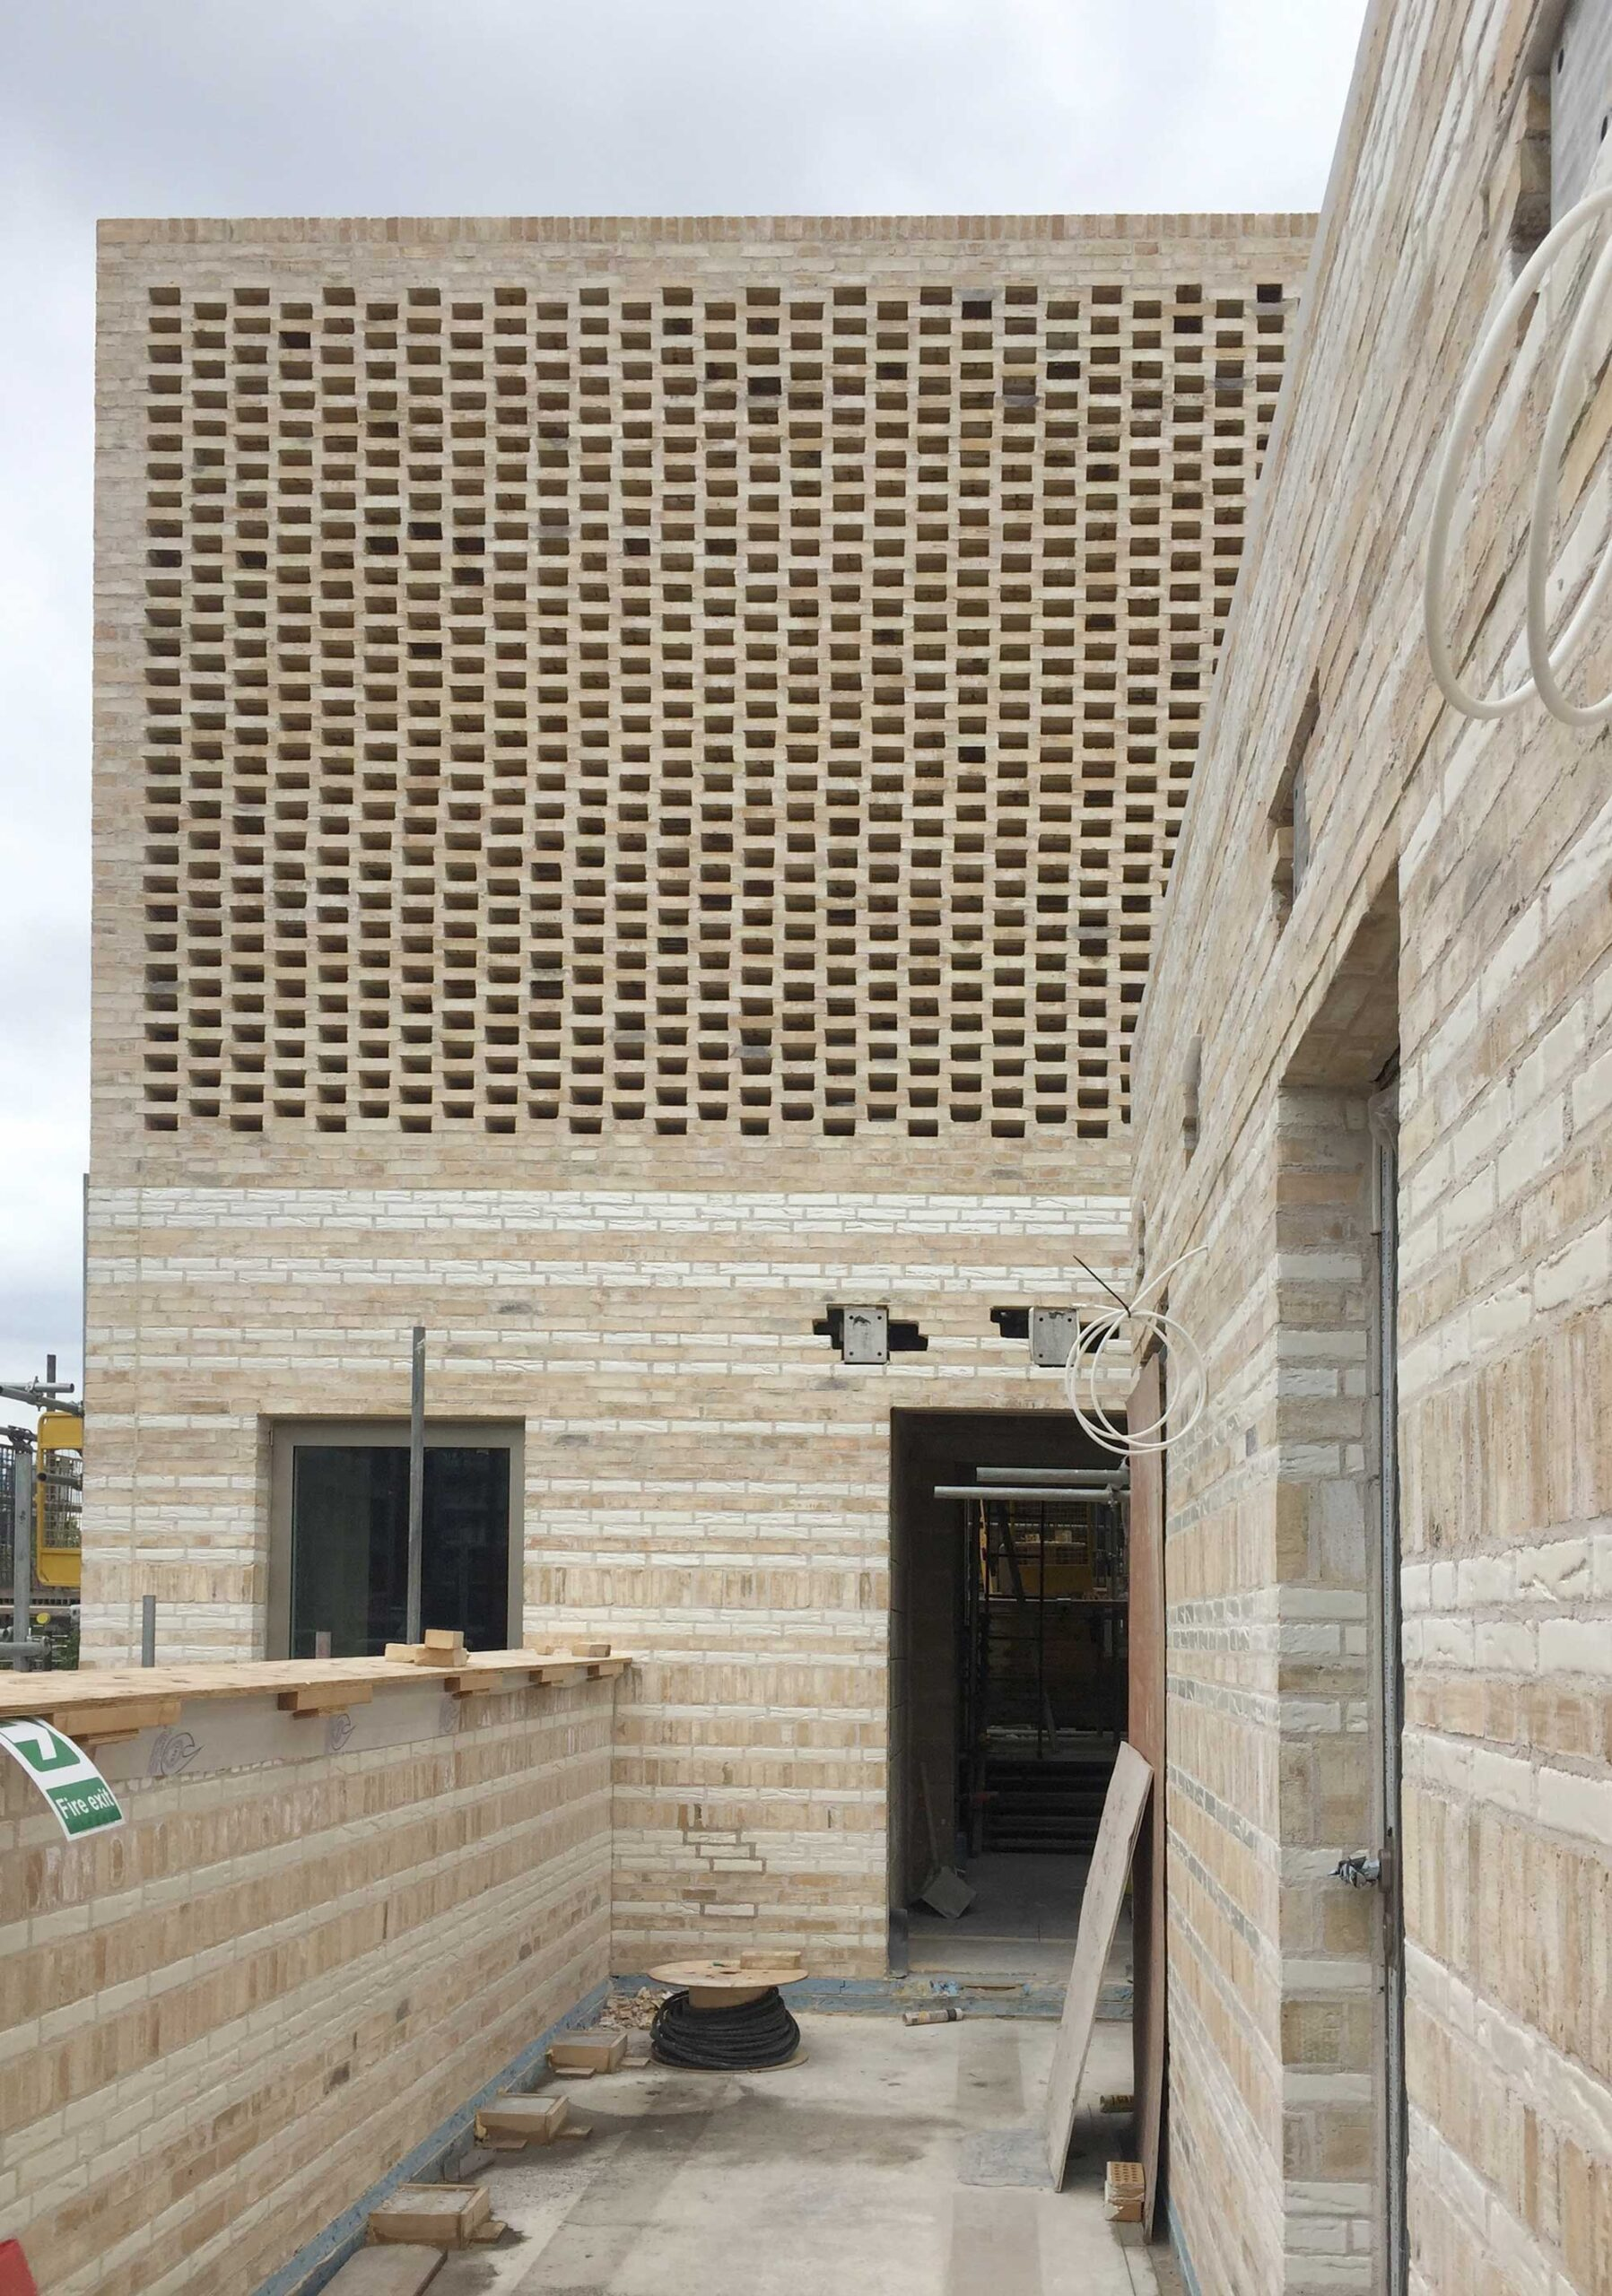 westminster-fire-station-openstudio-architects-perforated-brick-facade